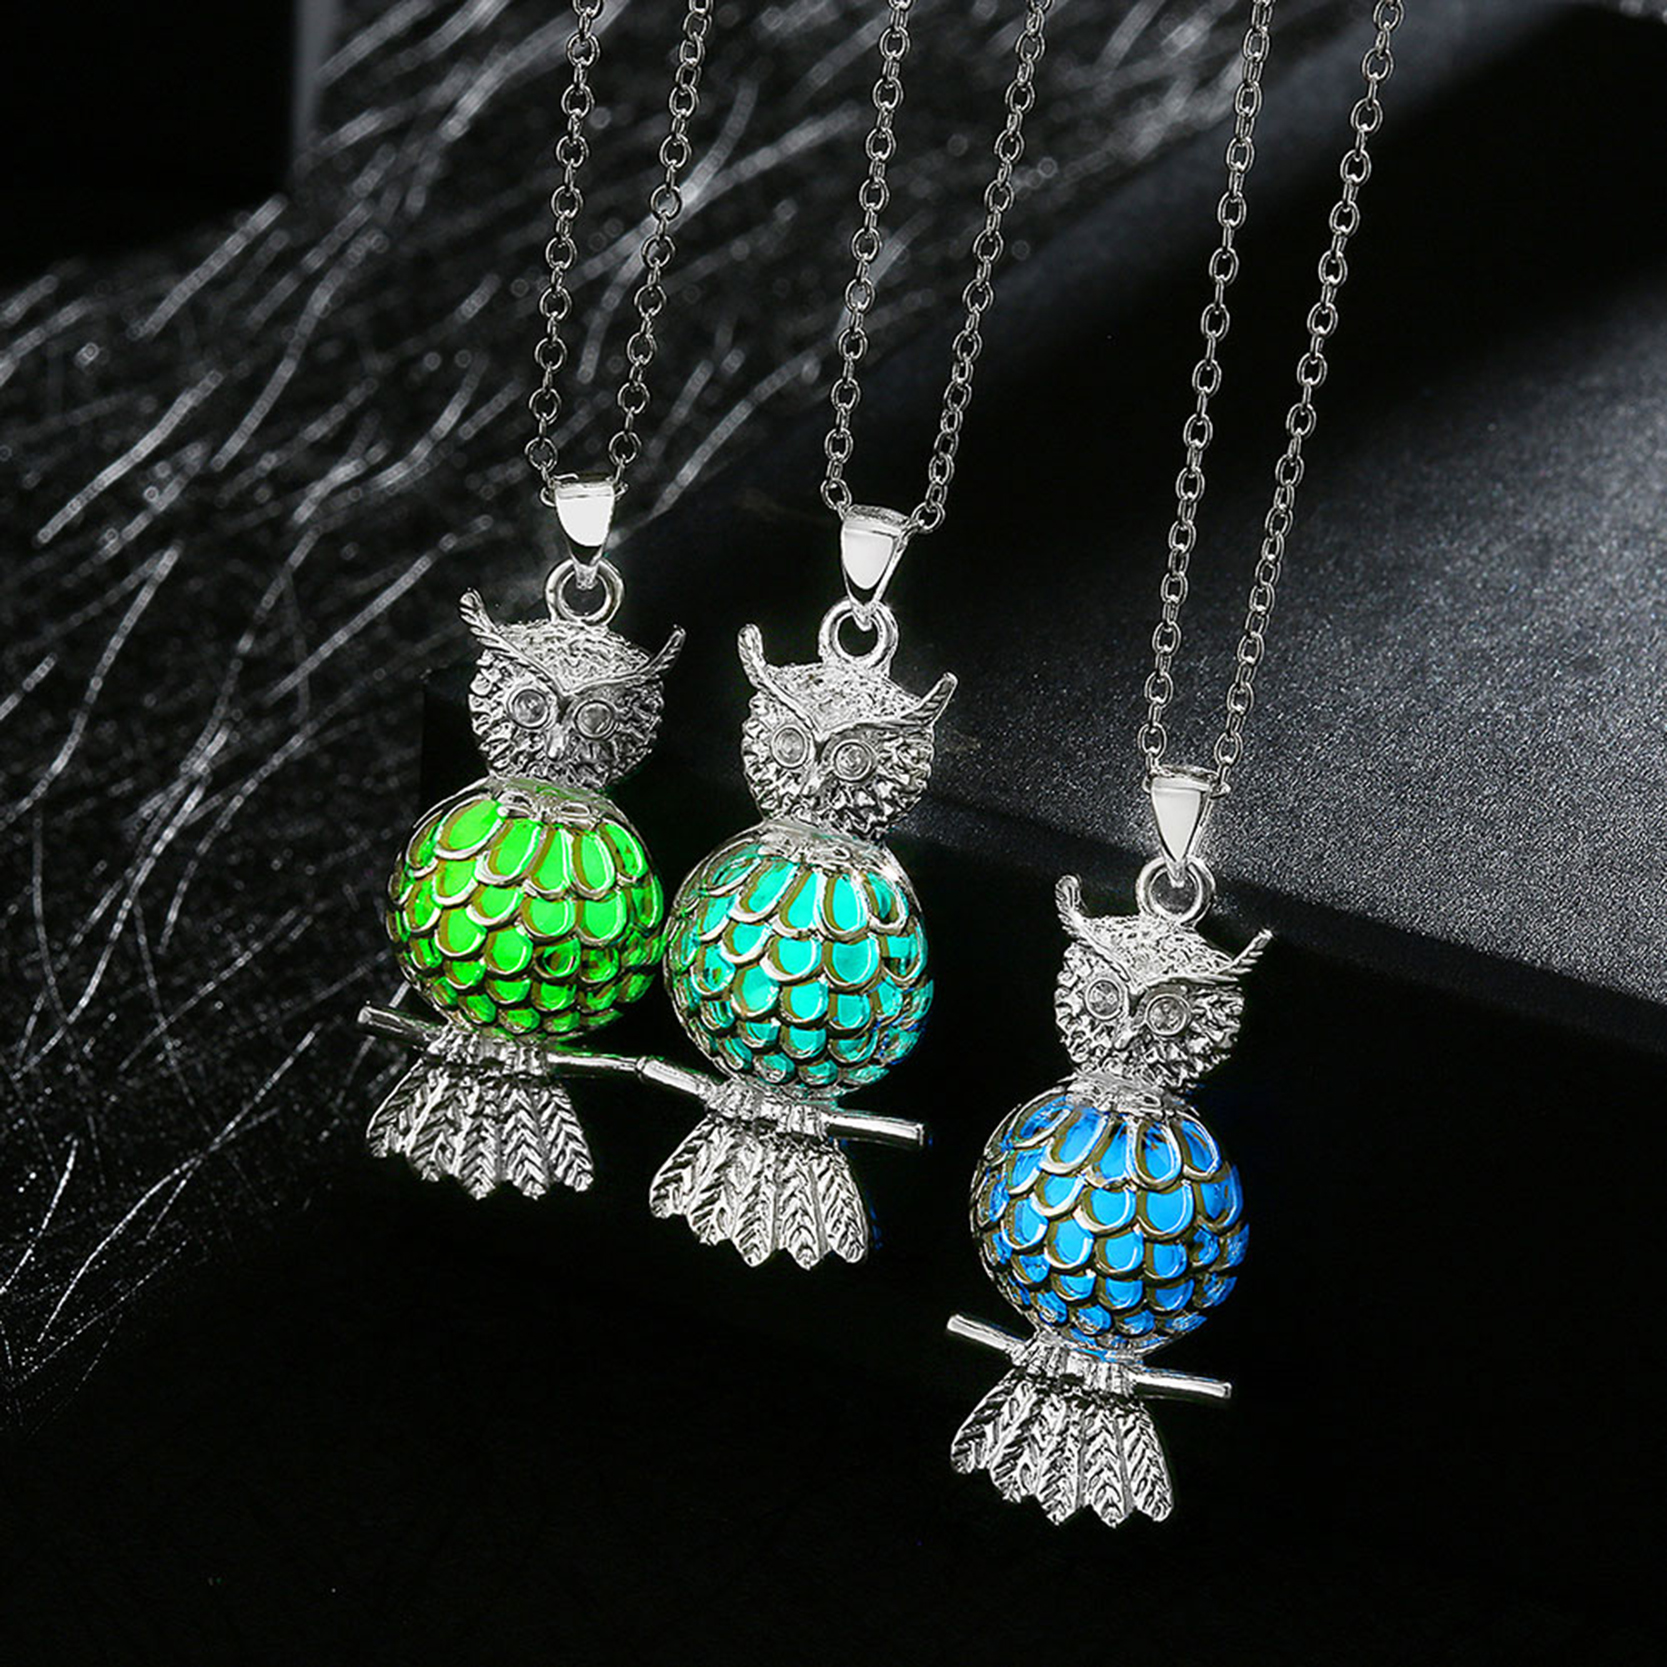 2017 Fashion Silver Plated Chain Statement Night Necklaces Phosphors Owl Glowing In The Dark Pendant Necklaces Jewelry For Women ...